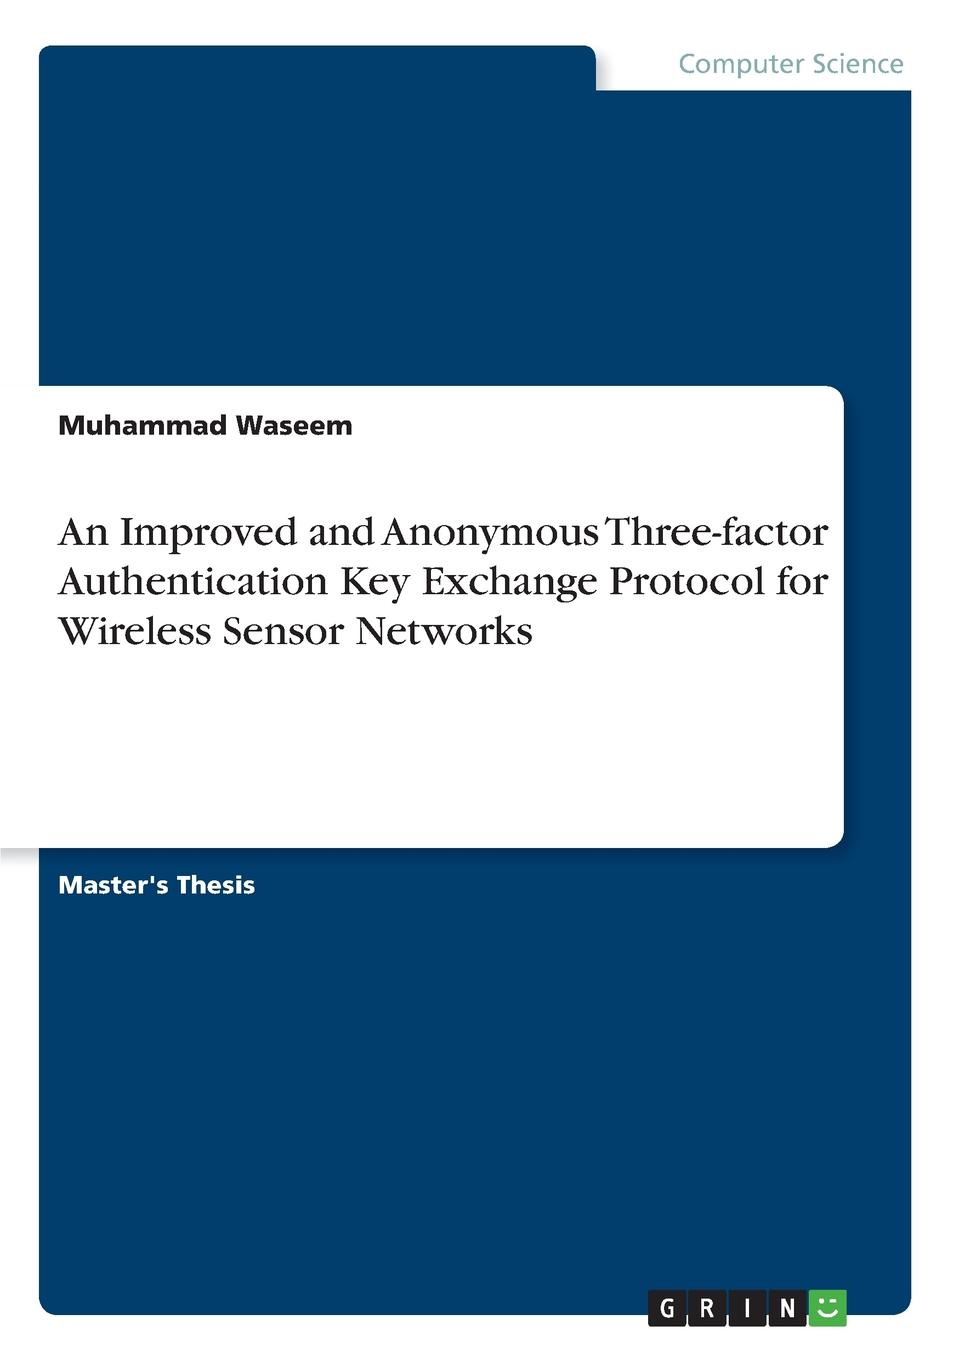 Muhammad Waseem An Improved and Anonymous Three-factor Authentication Key Exchange Protocol for Wireless Sensor Networks divya rajasekar cluster based secure key establishment protocol for wsn